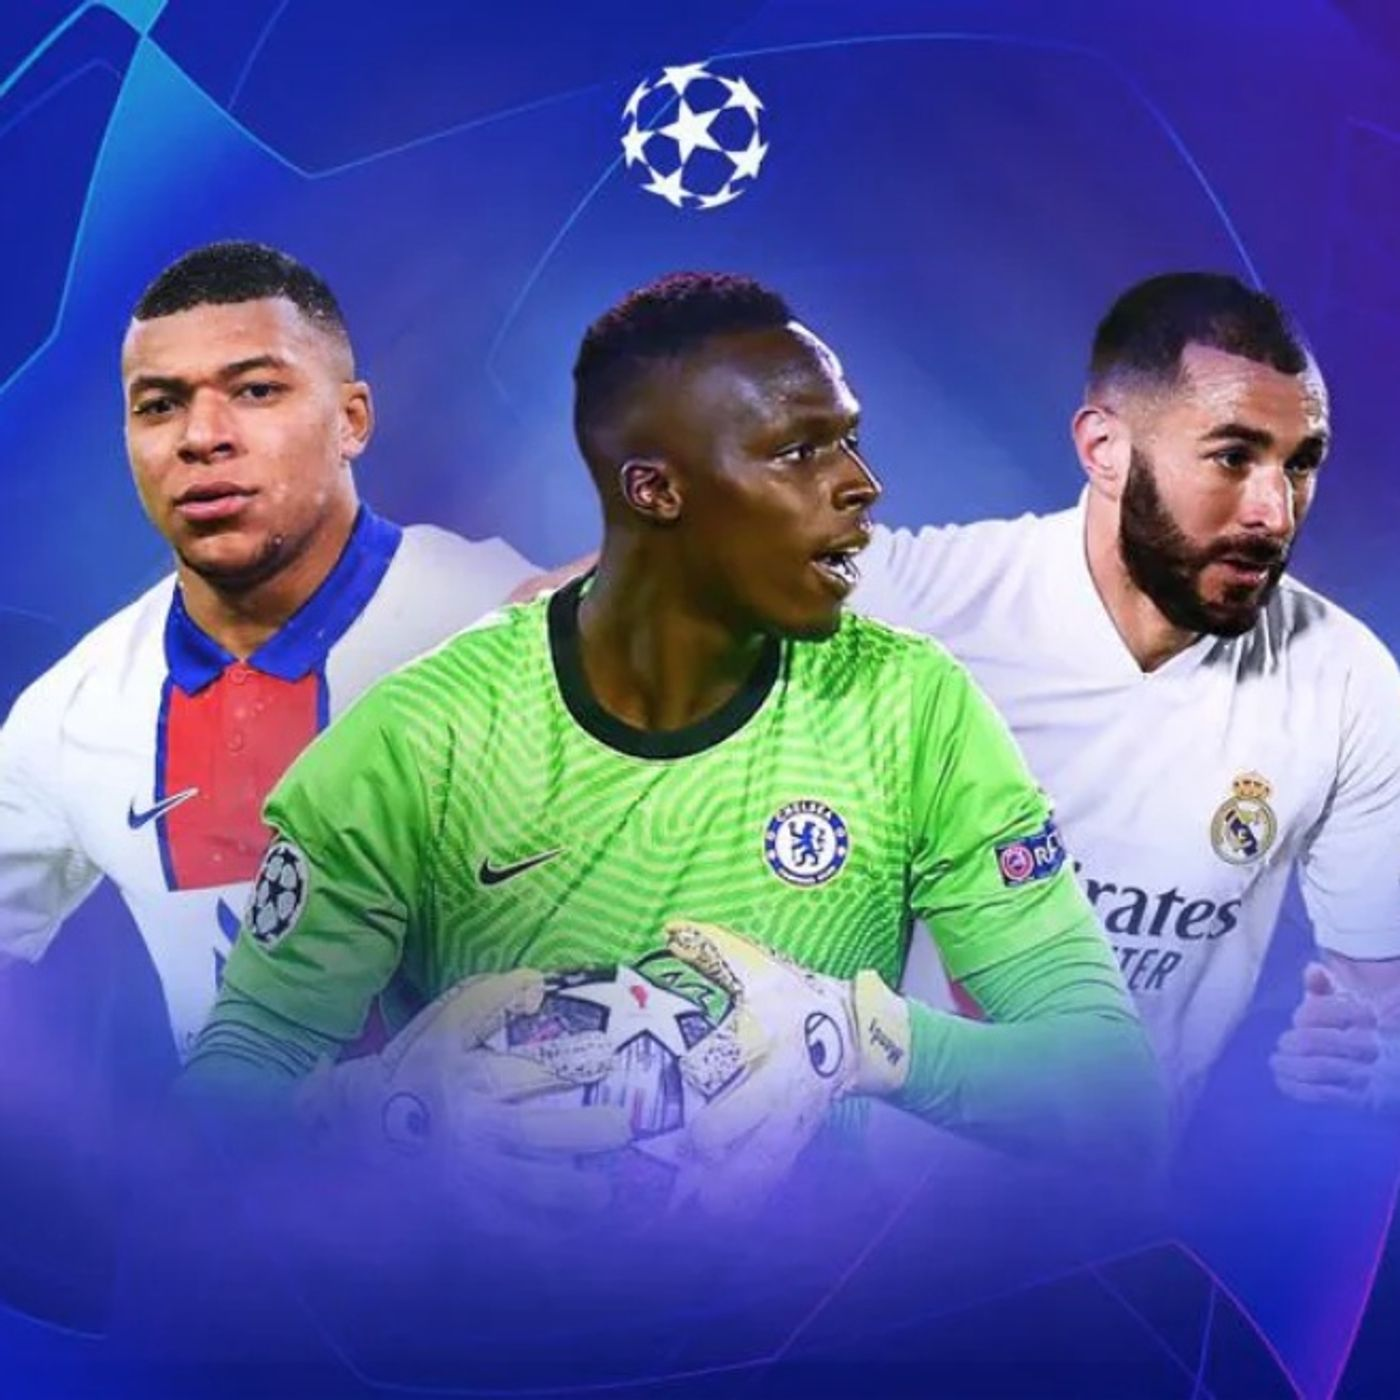 UEFA Champions League & Europa League Quarter-Finals: Betting Previews & Official Picks for the 2nd Legs (04/13 - 04/15)